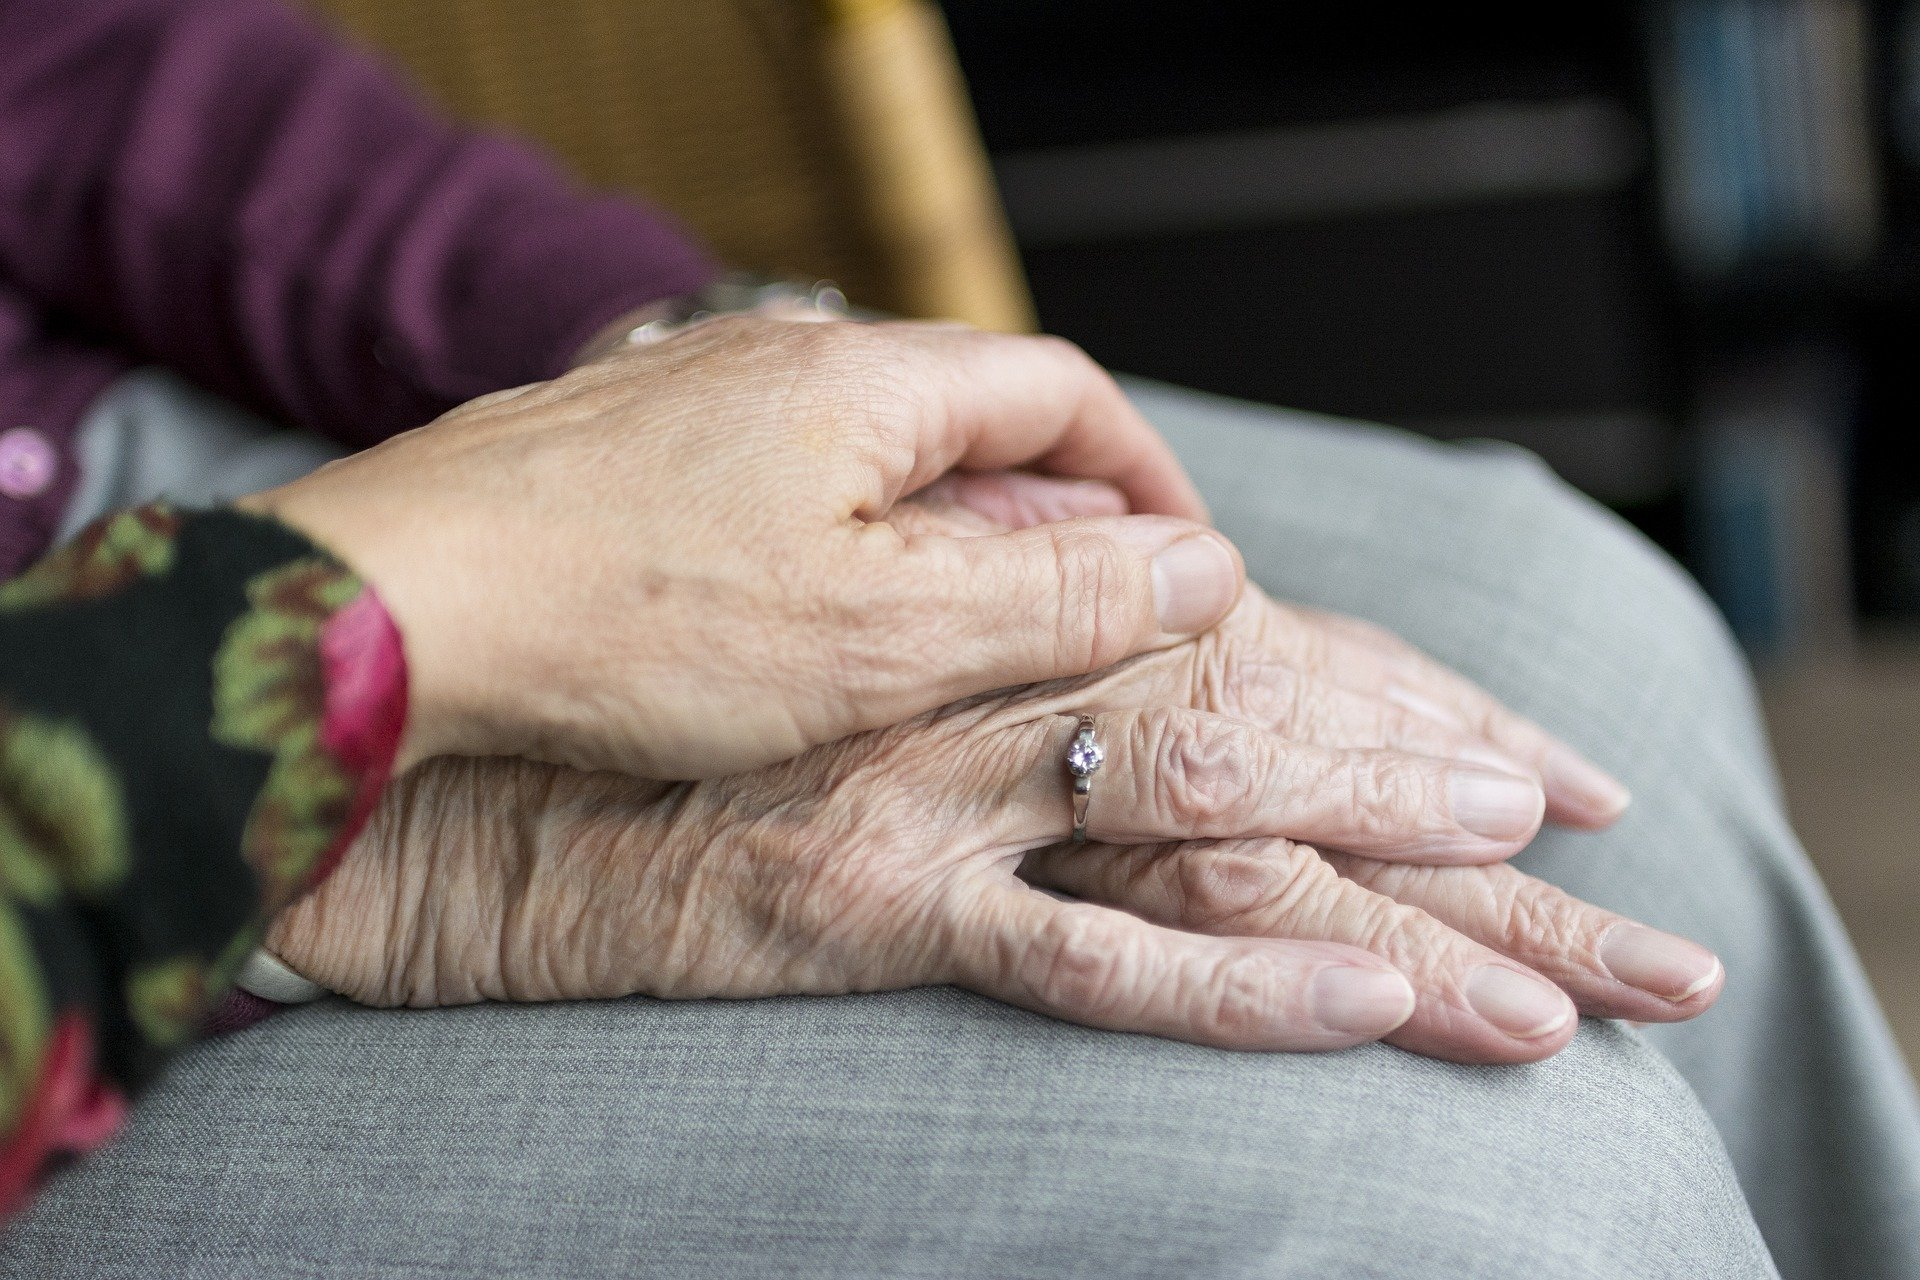 Elderly person, old person's hand